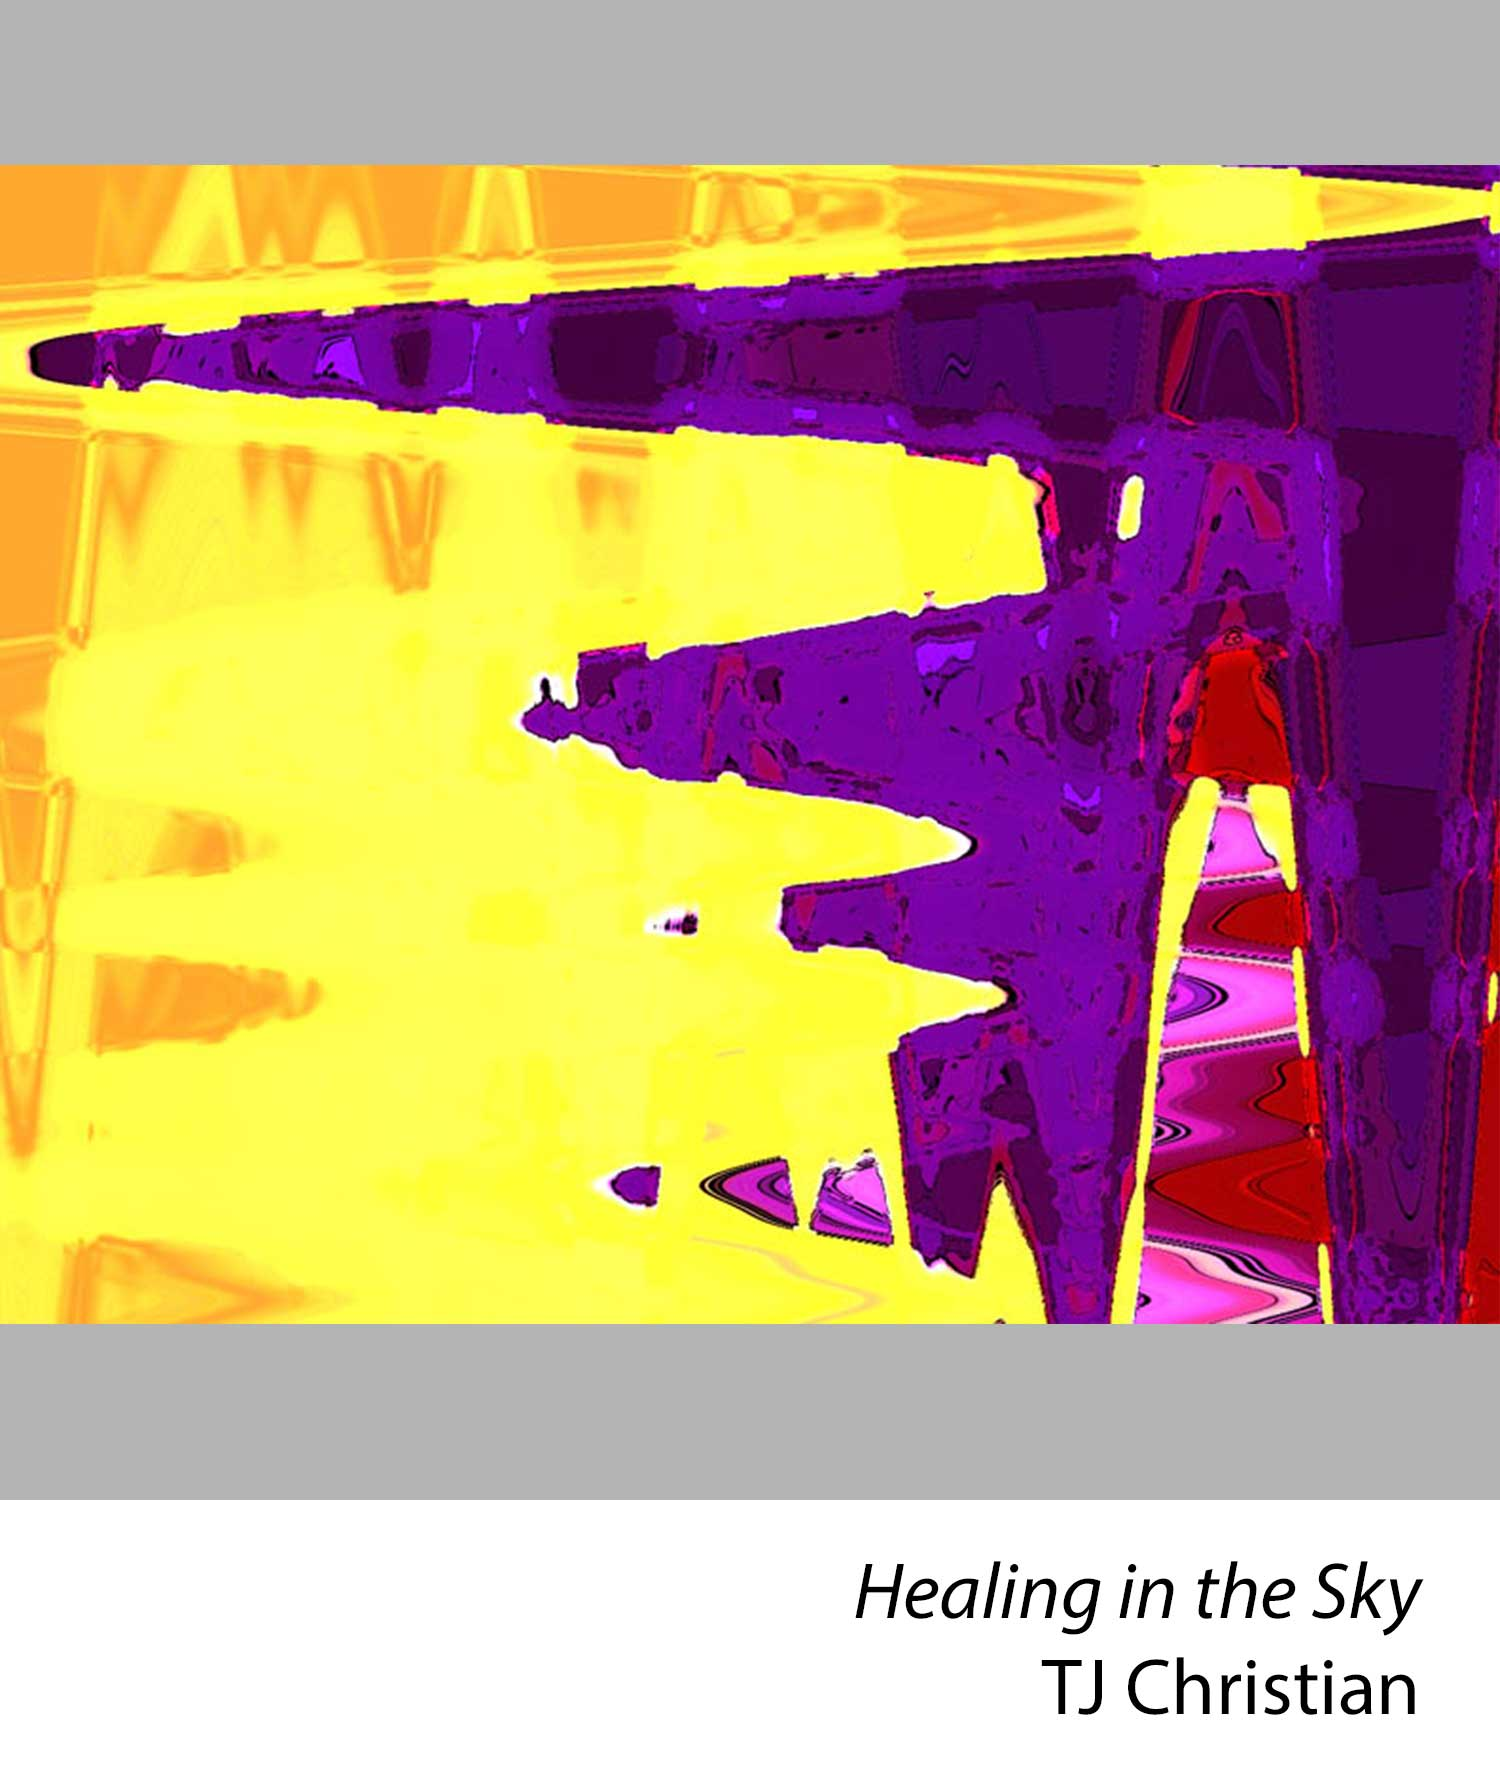 Healing in the Sky by TJ Christian